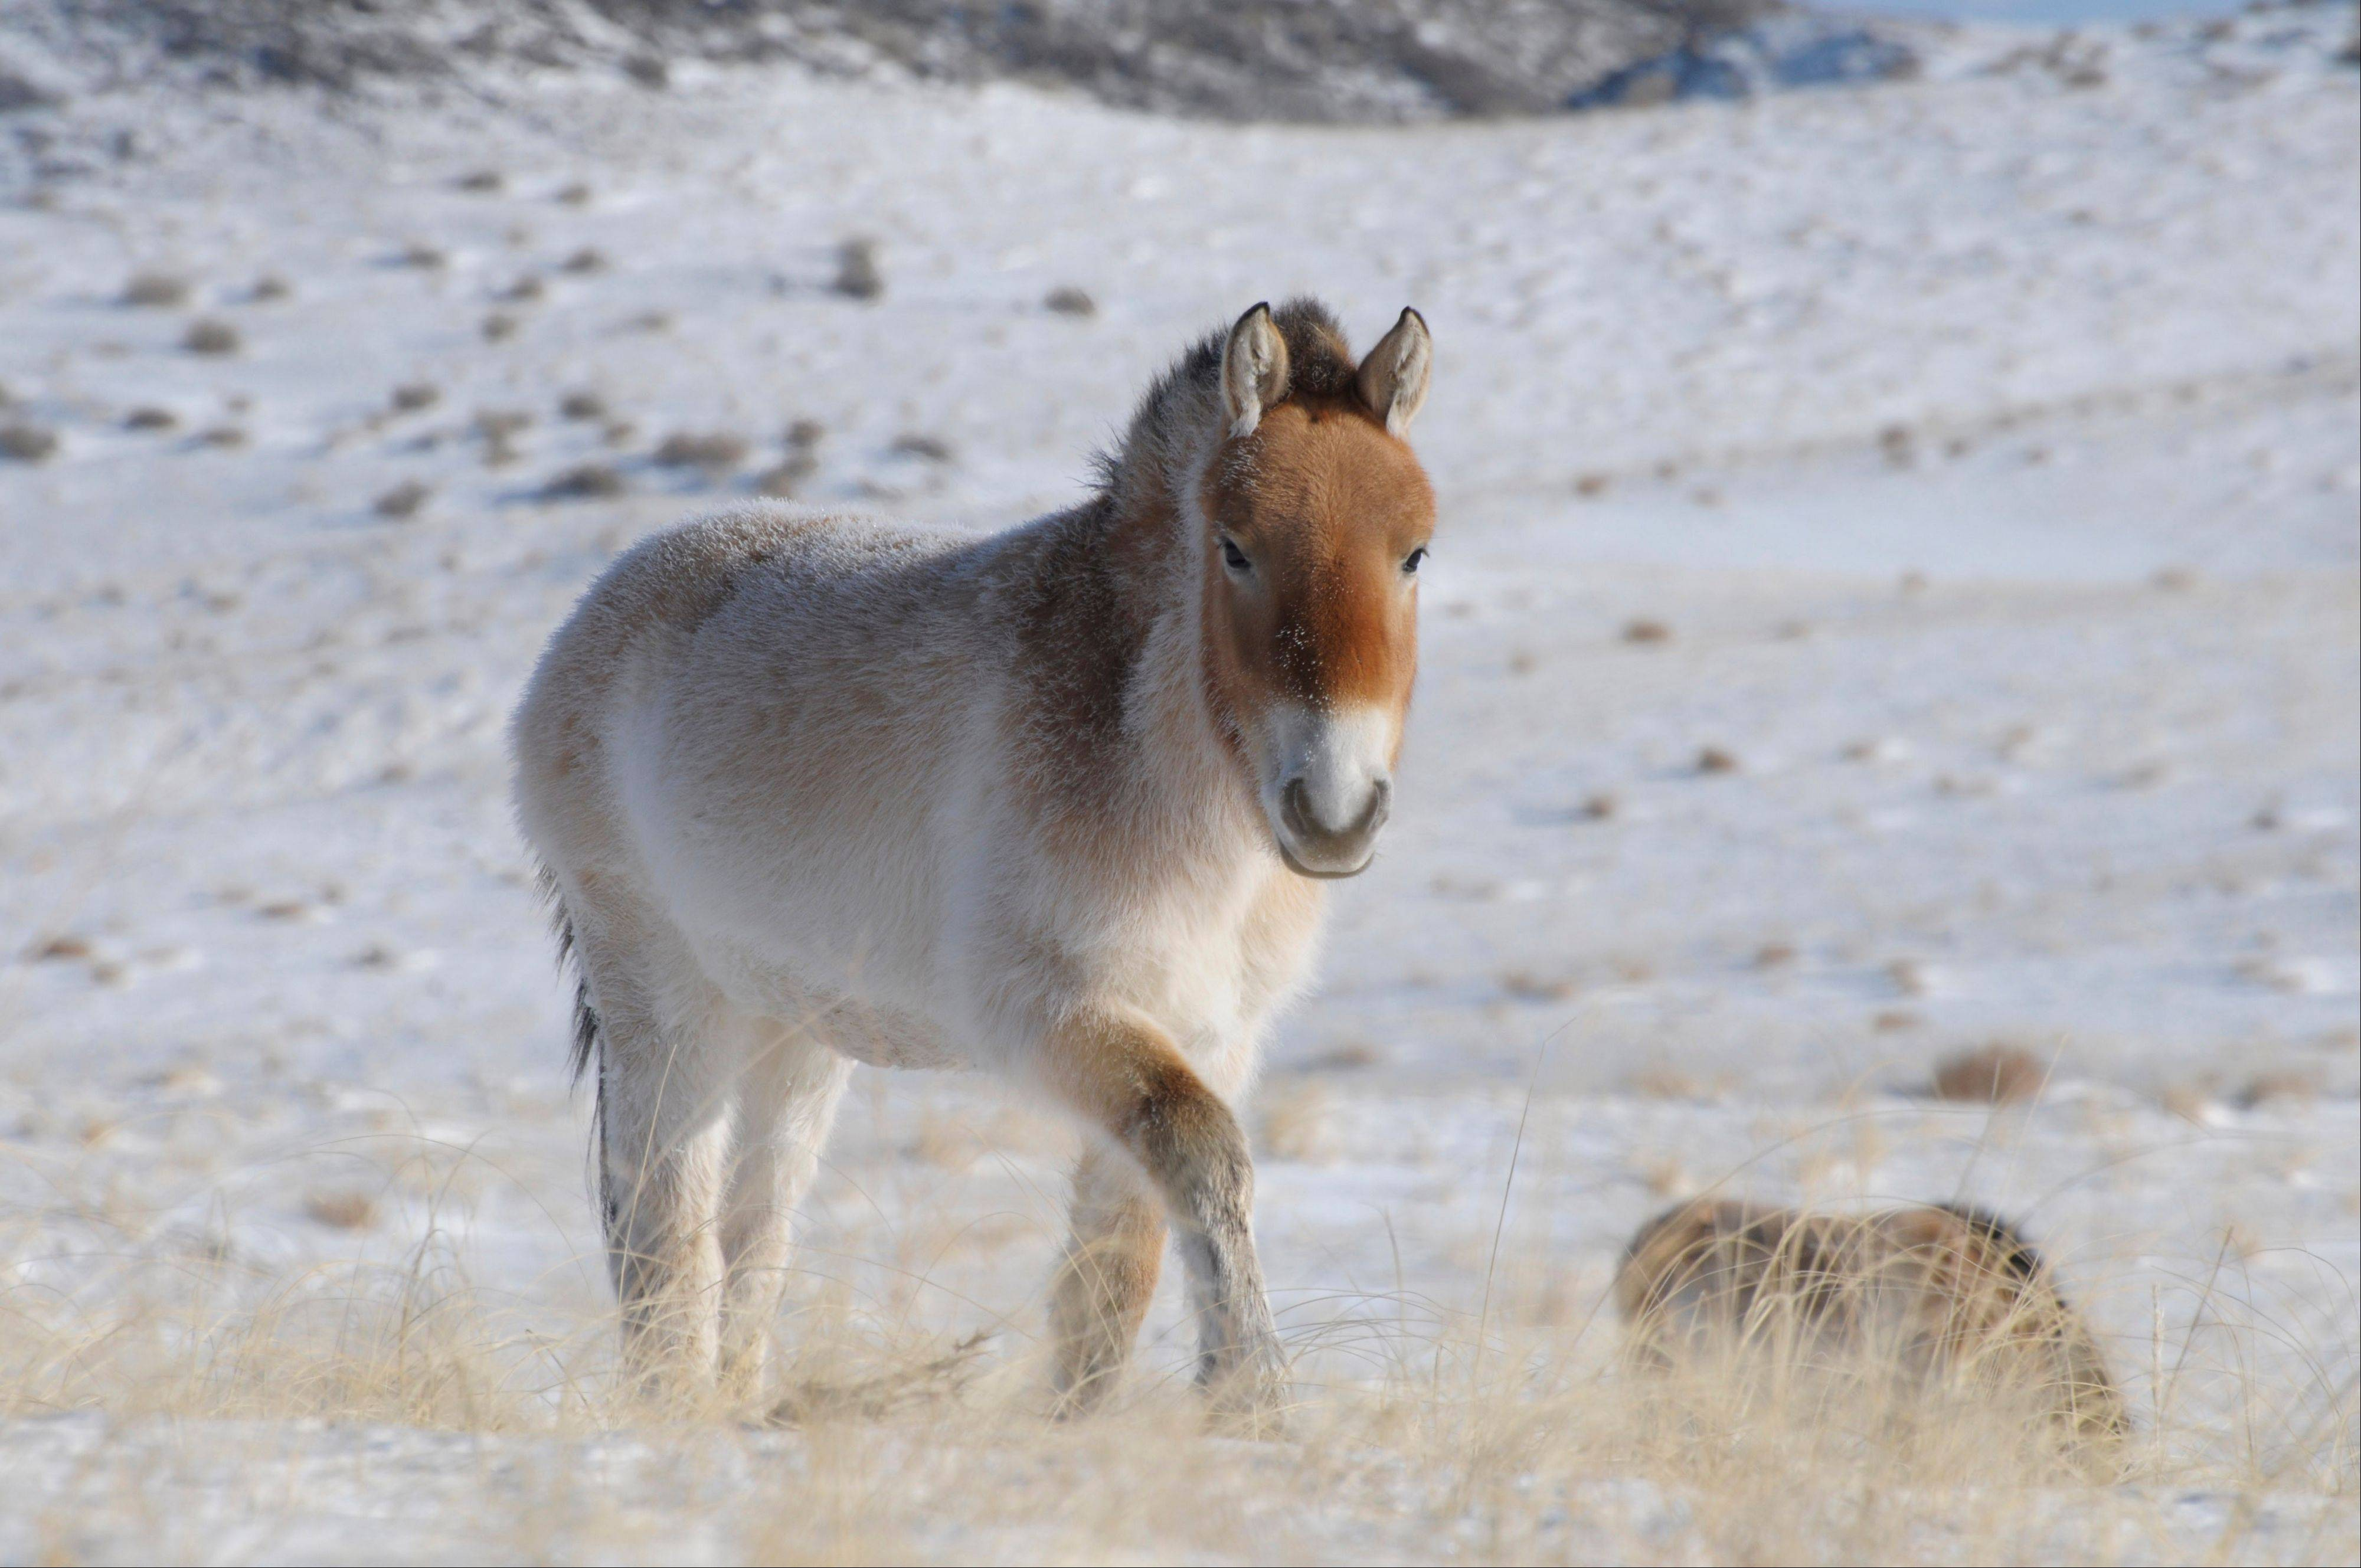 In this January 2010 photo provided by the journal Nature via Przewalski's Horse Association, a Przewalski's horse is shown in Khomyntal, western Mongolia, in one of three reintroduction sites. From a tiny fossil bone found in the frozen Yukon, scientists have deciphered the genetic code of an ancient horse about 700,000 years old — nearly 10 times older than any other animal that has had its genome mapped. The researchers also found new evidence that the endangered Przewalski's horse, found in Mongolia and China, is the last surviving wild horse.